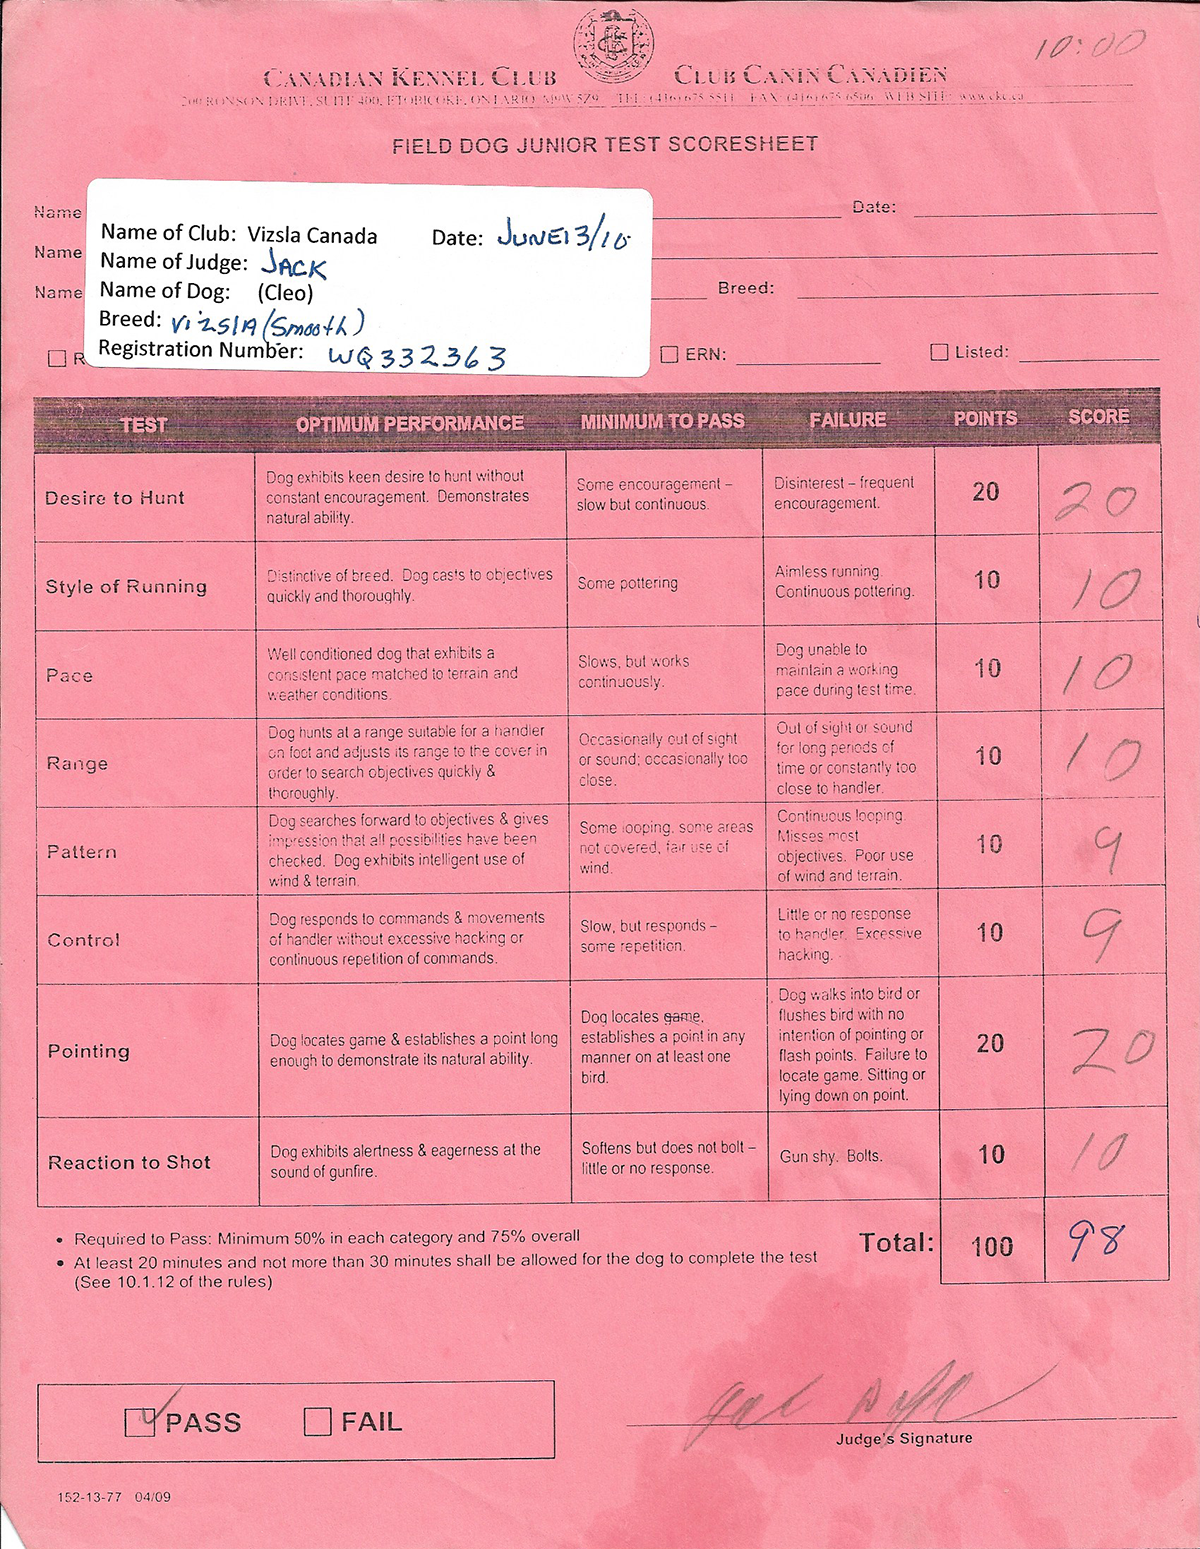 Canadian Kennel Club Field Dog Junior Test Scoresheet